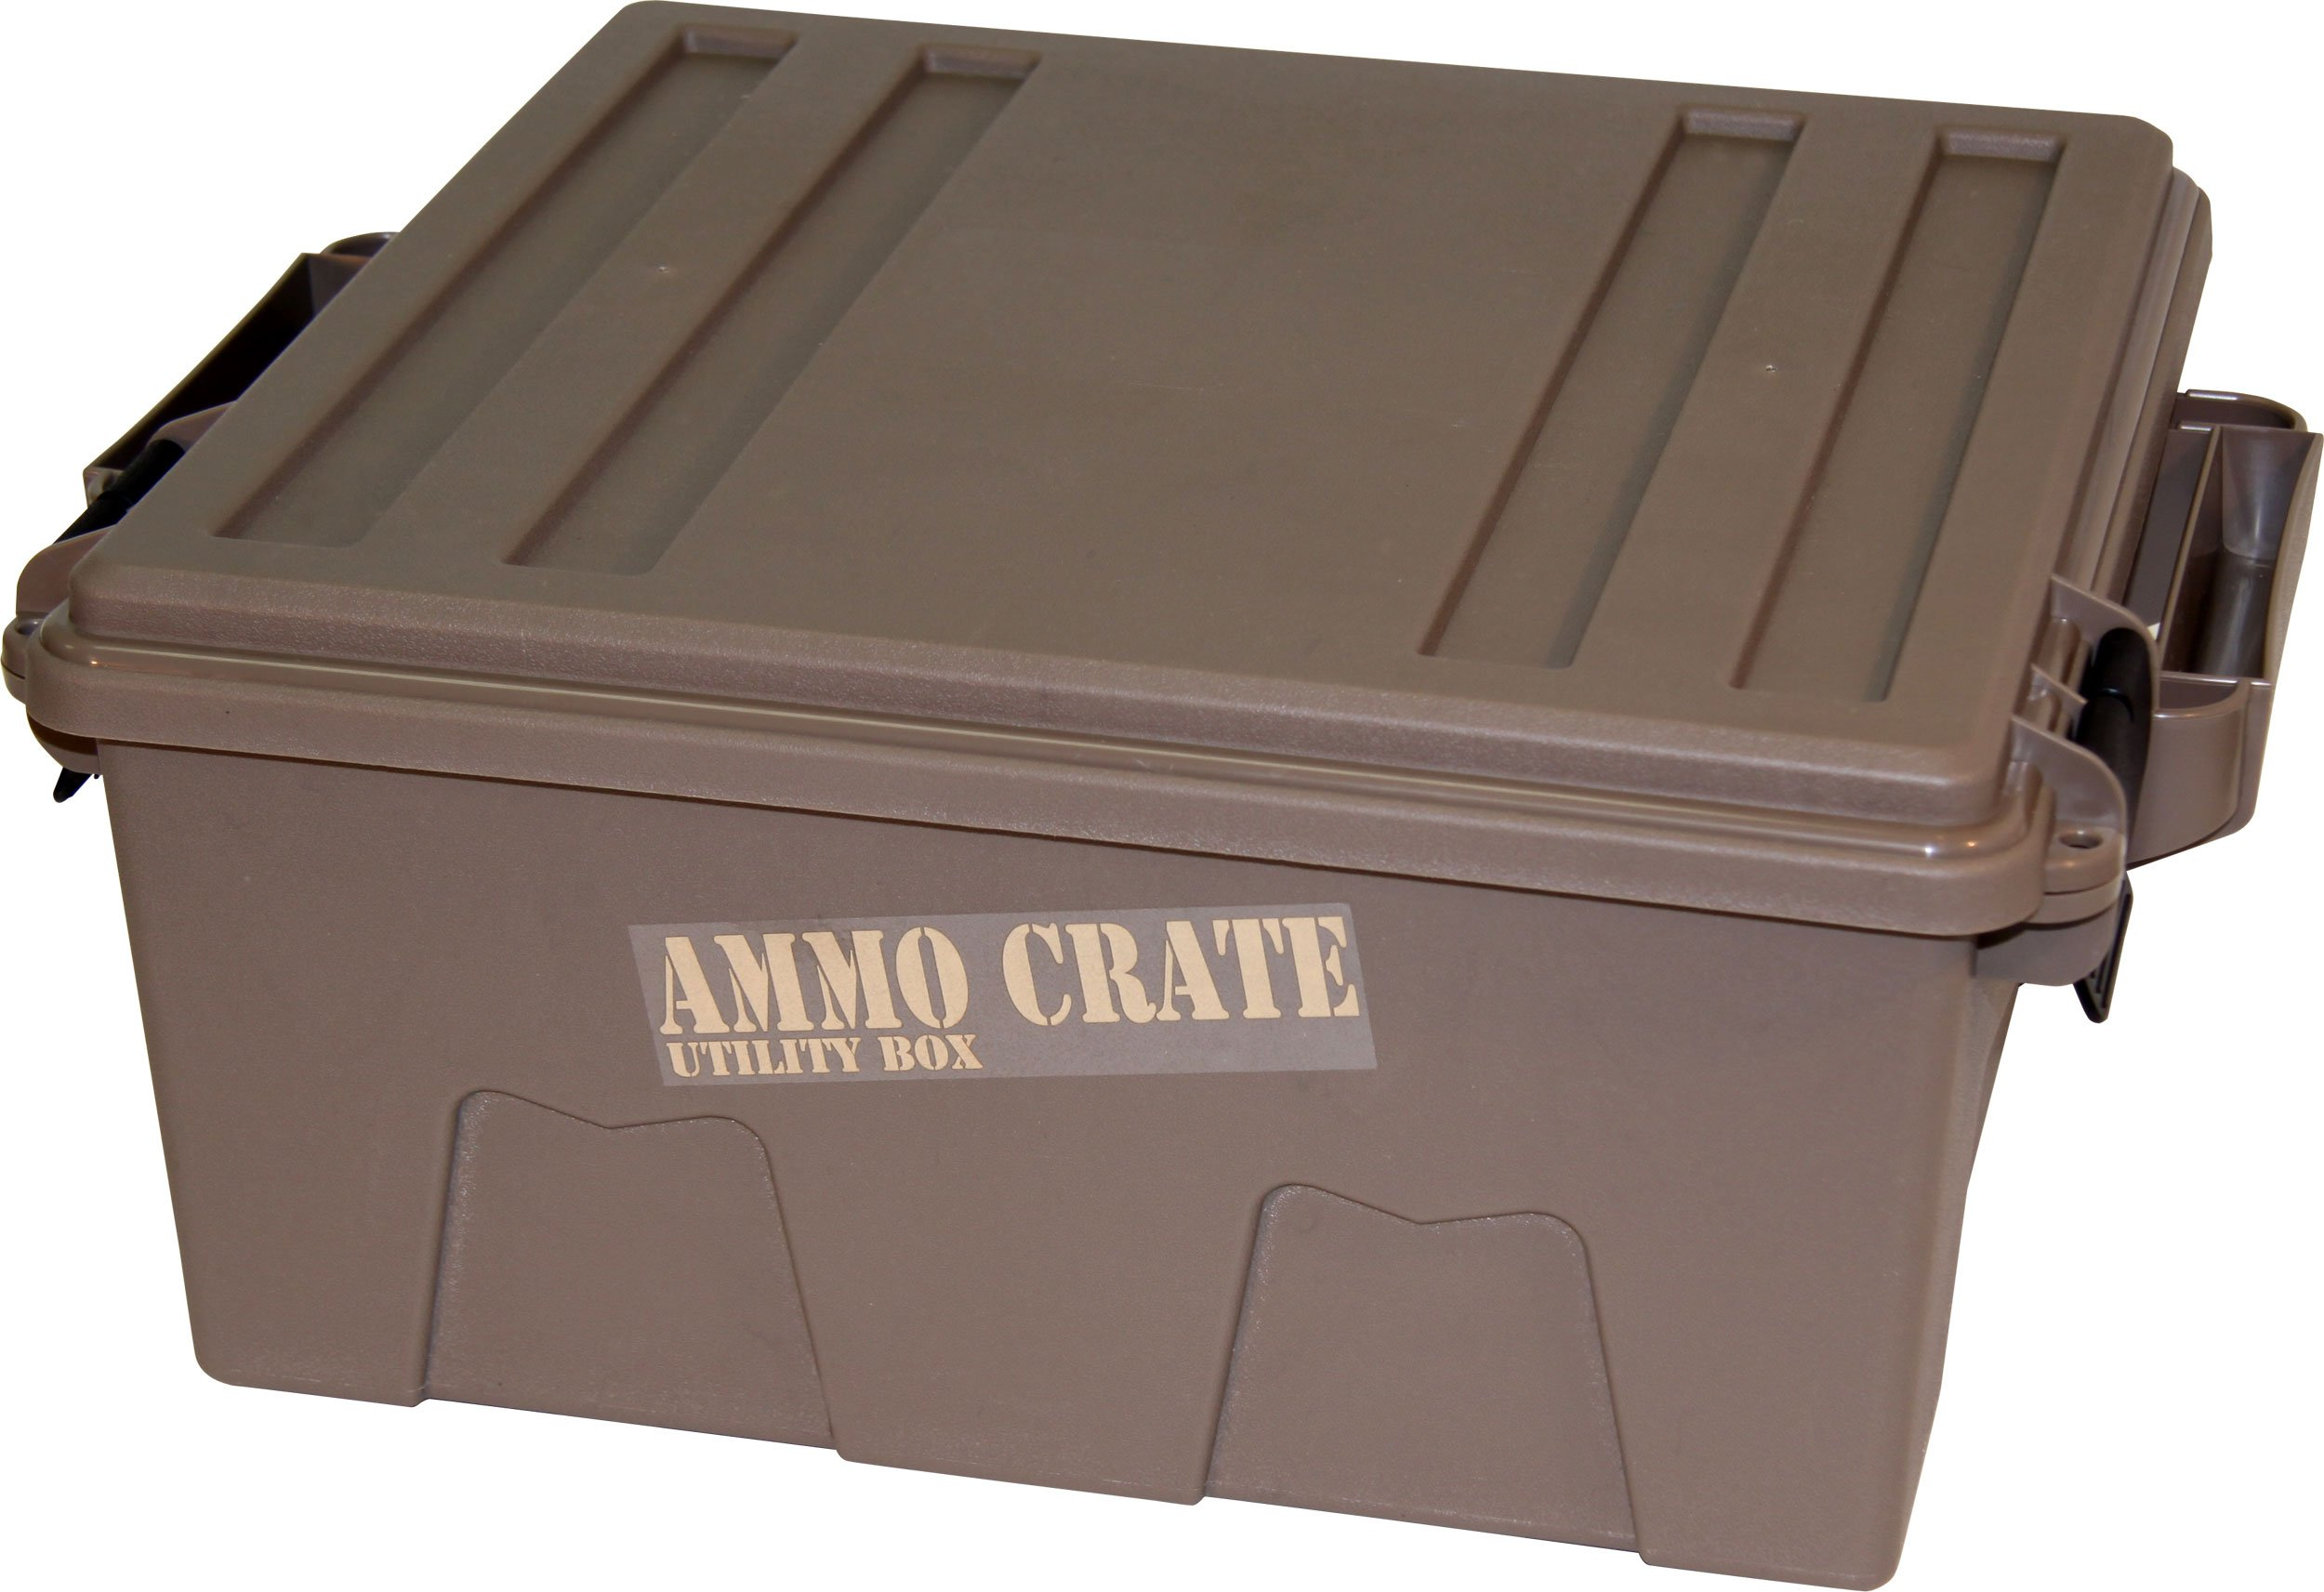 MTM ACR8-72 Ammo Crate Utility Box